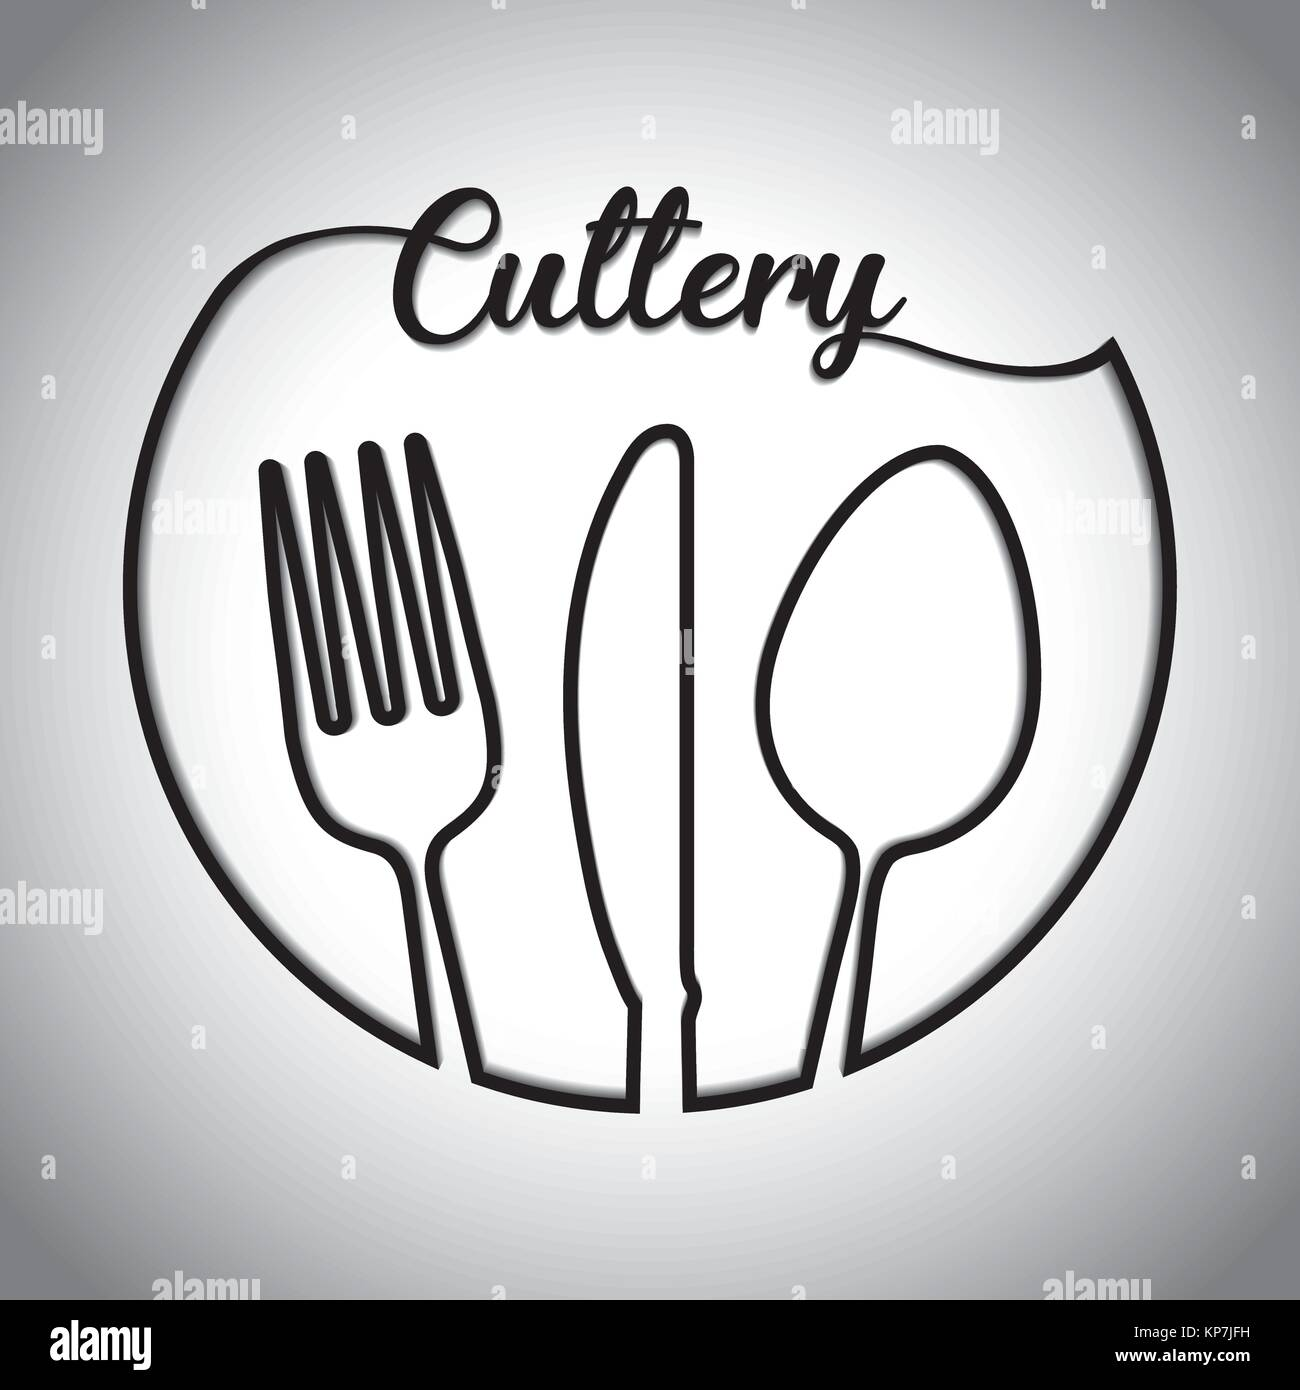 Fork Spoon Knife Cutlery Symbol Stock Vector Art Illustration